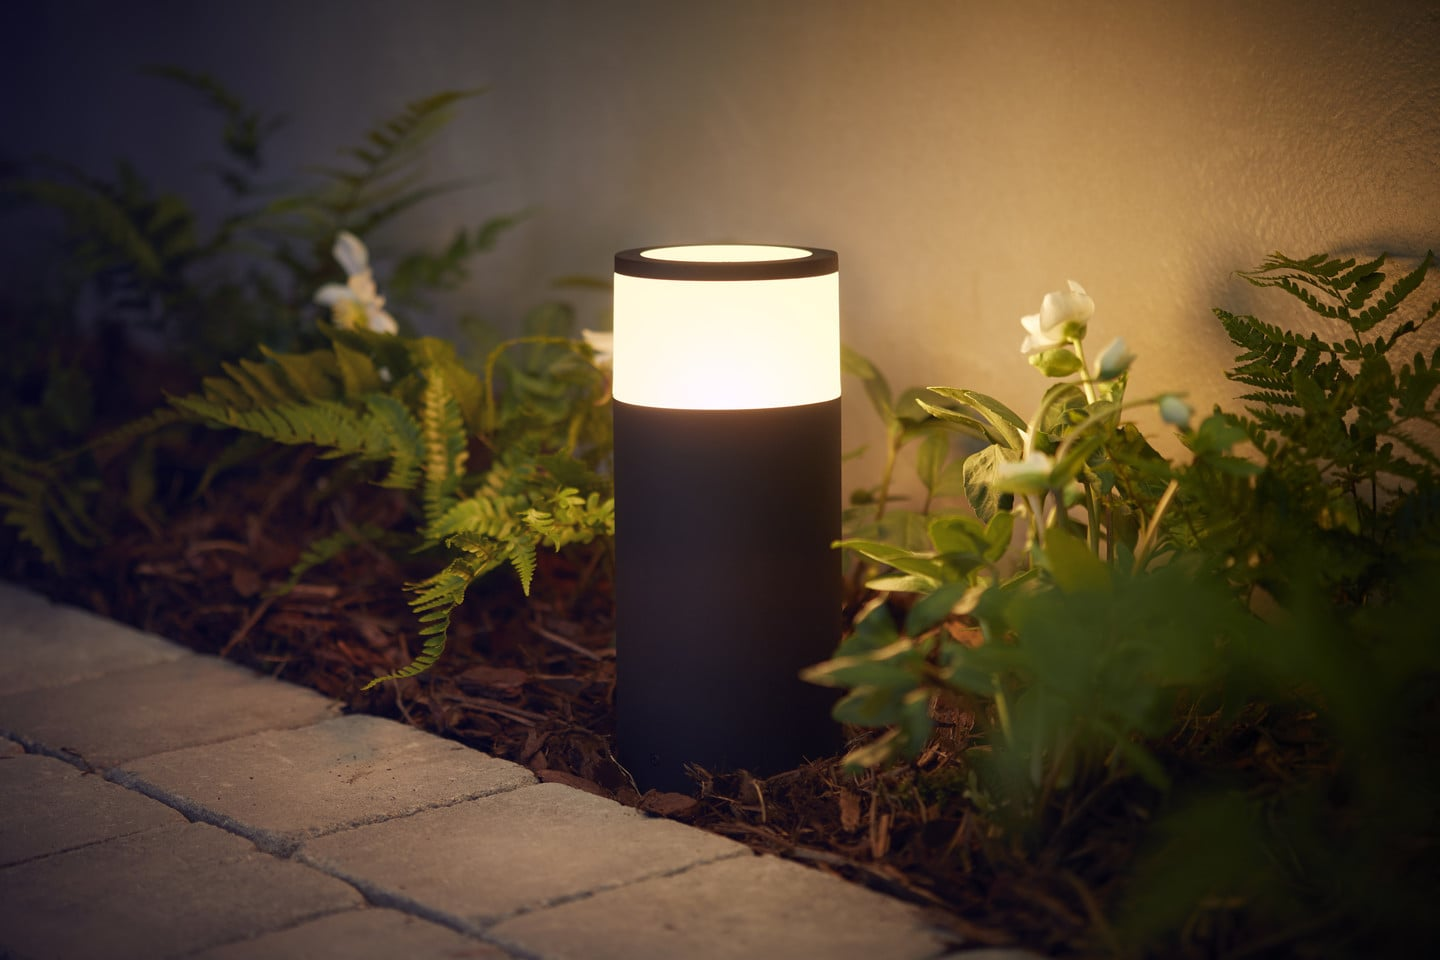 Philips releases outdoor connected Hue lighting